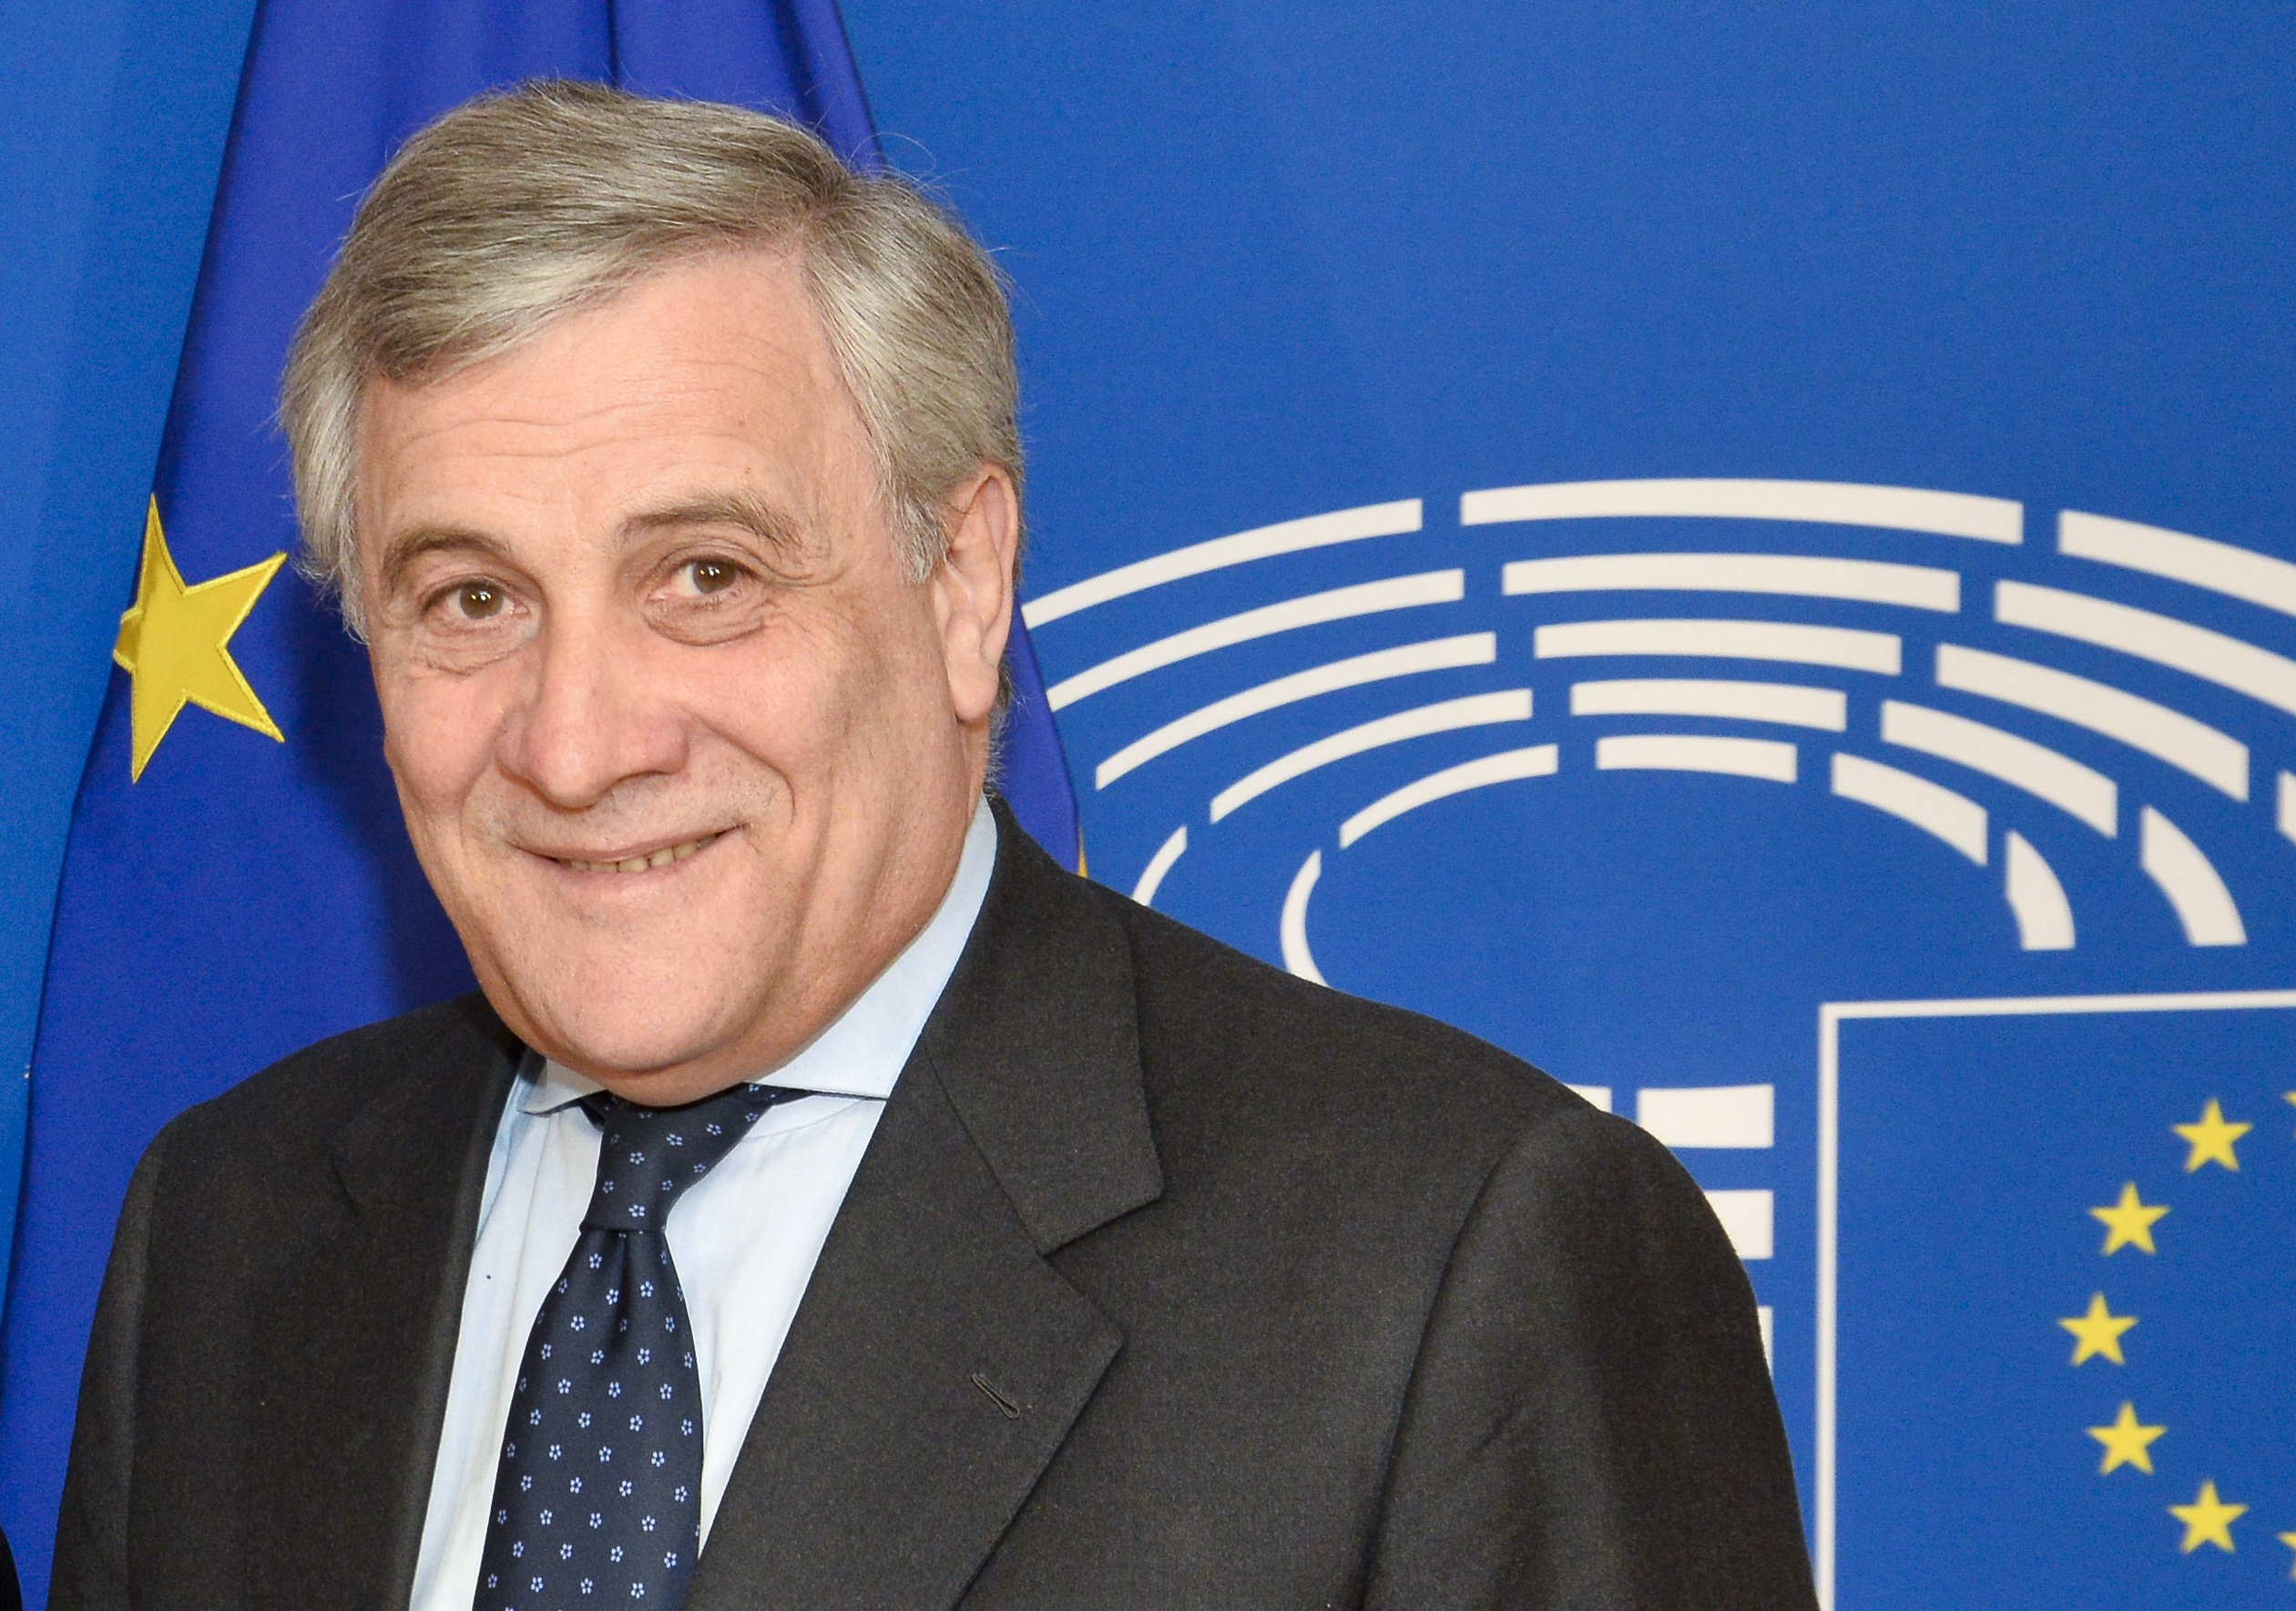 Portrait of President Tajani